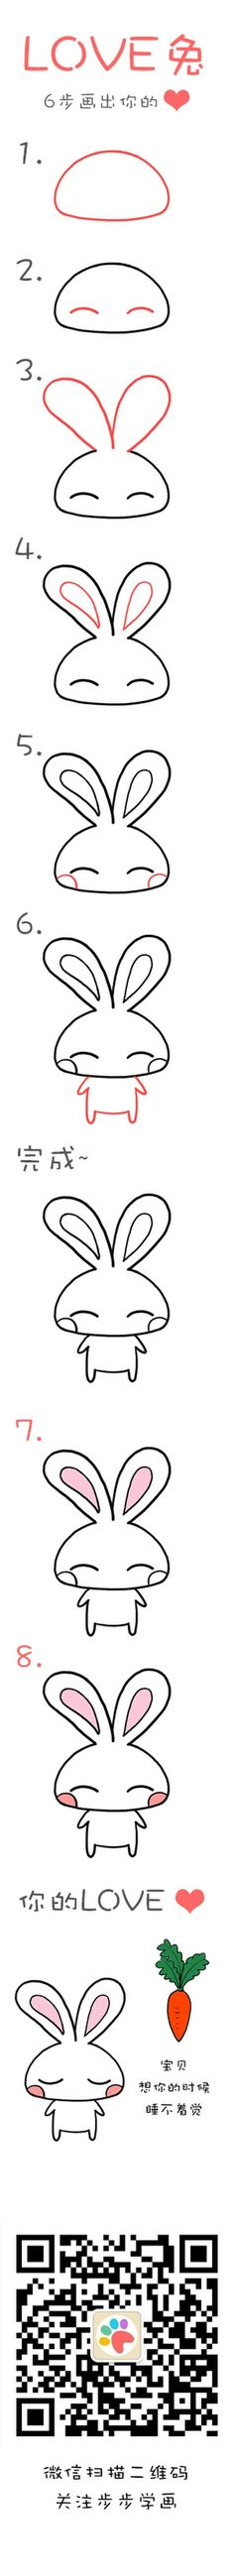 Such a cute little bunny doodle!